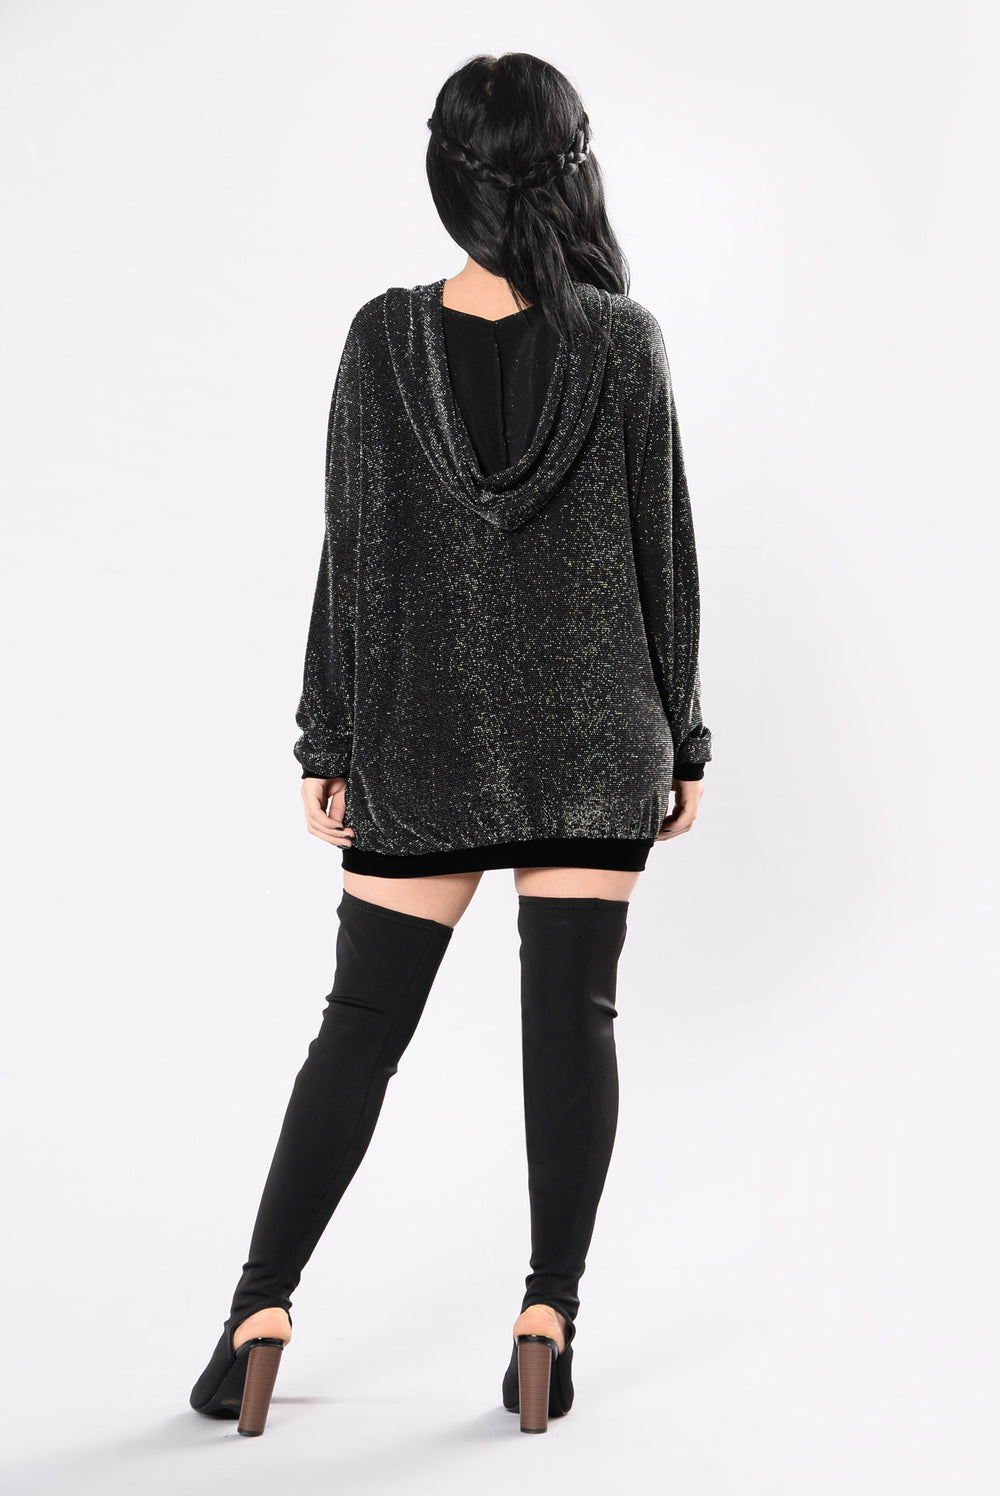 That's The Way It Is Tunic - Black/Silver